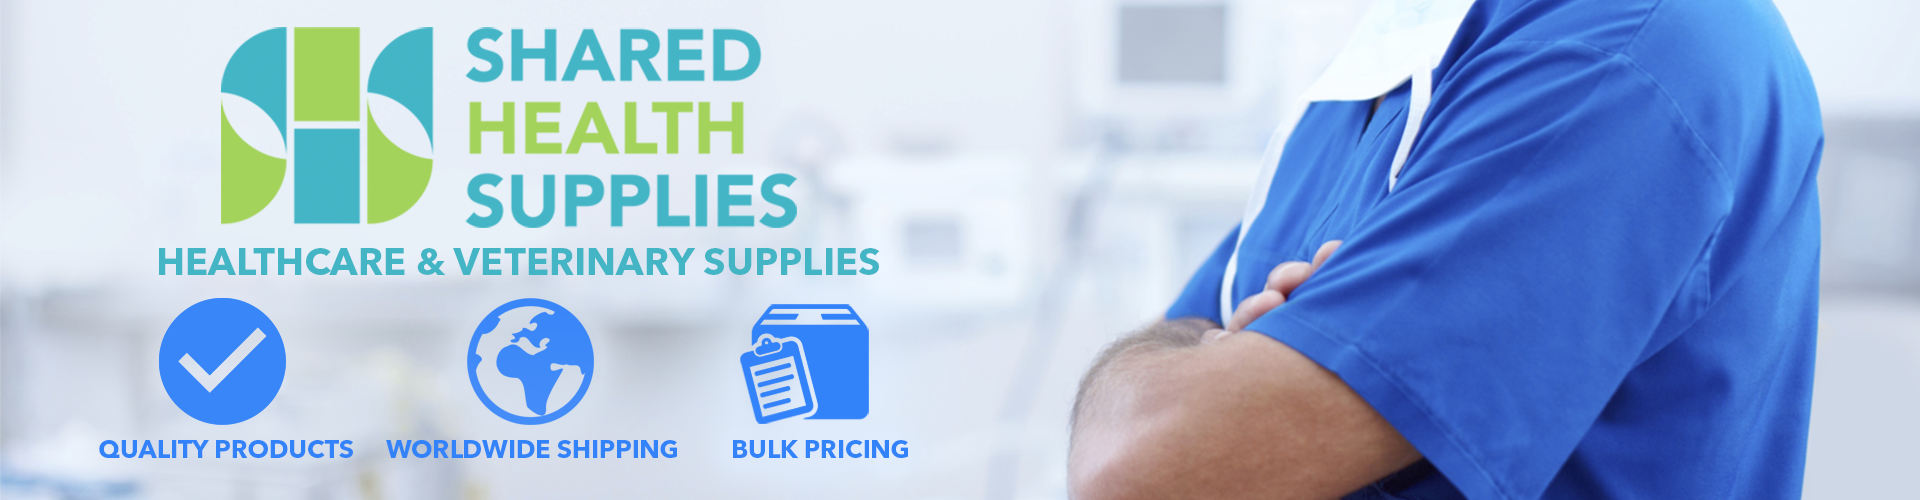 Shared Health Supplies Image for landing slider. Worldwide shipping, quality products, bulk pricing